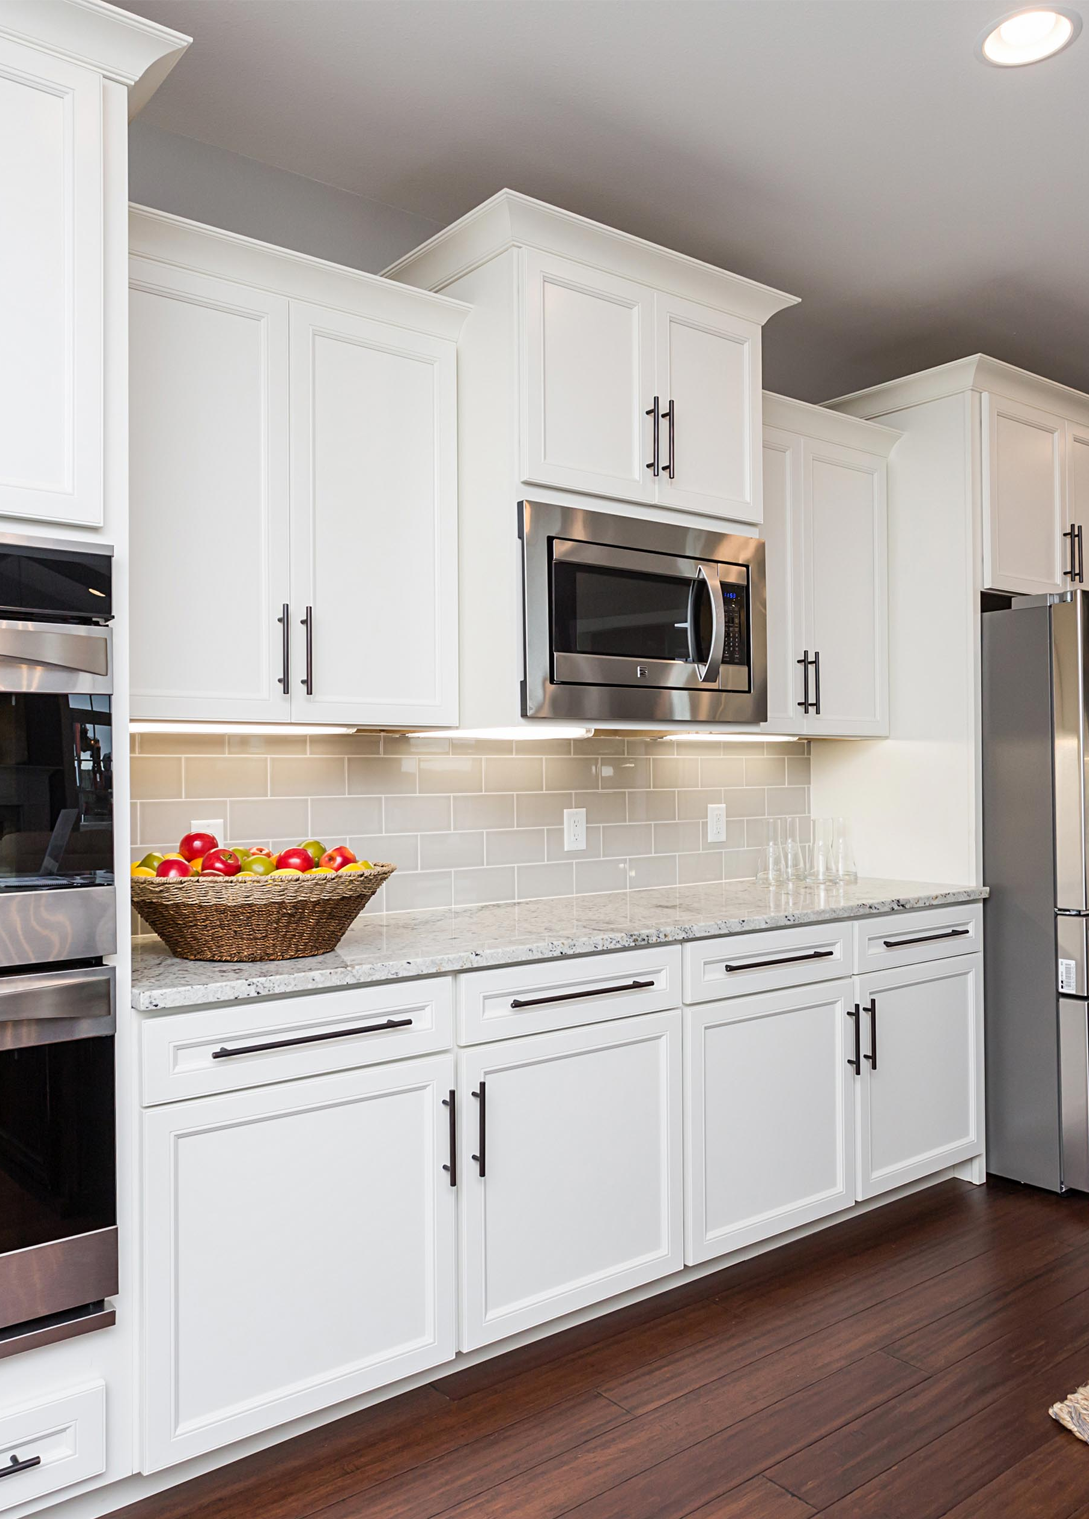 Update Kitchen Maple Cabinets This Sophisticated Classic Off White Kitchen Features